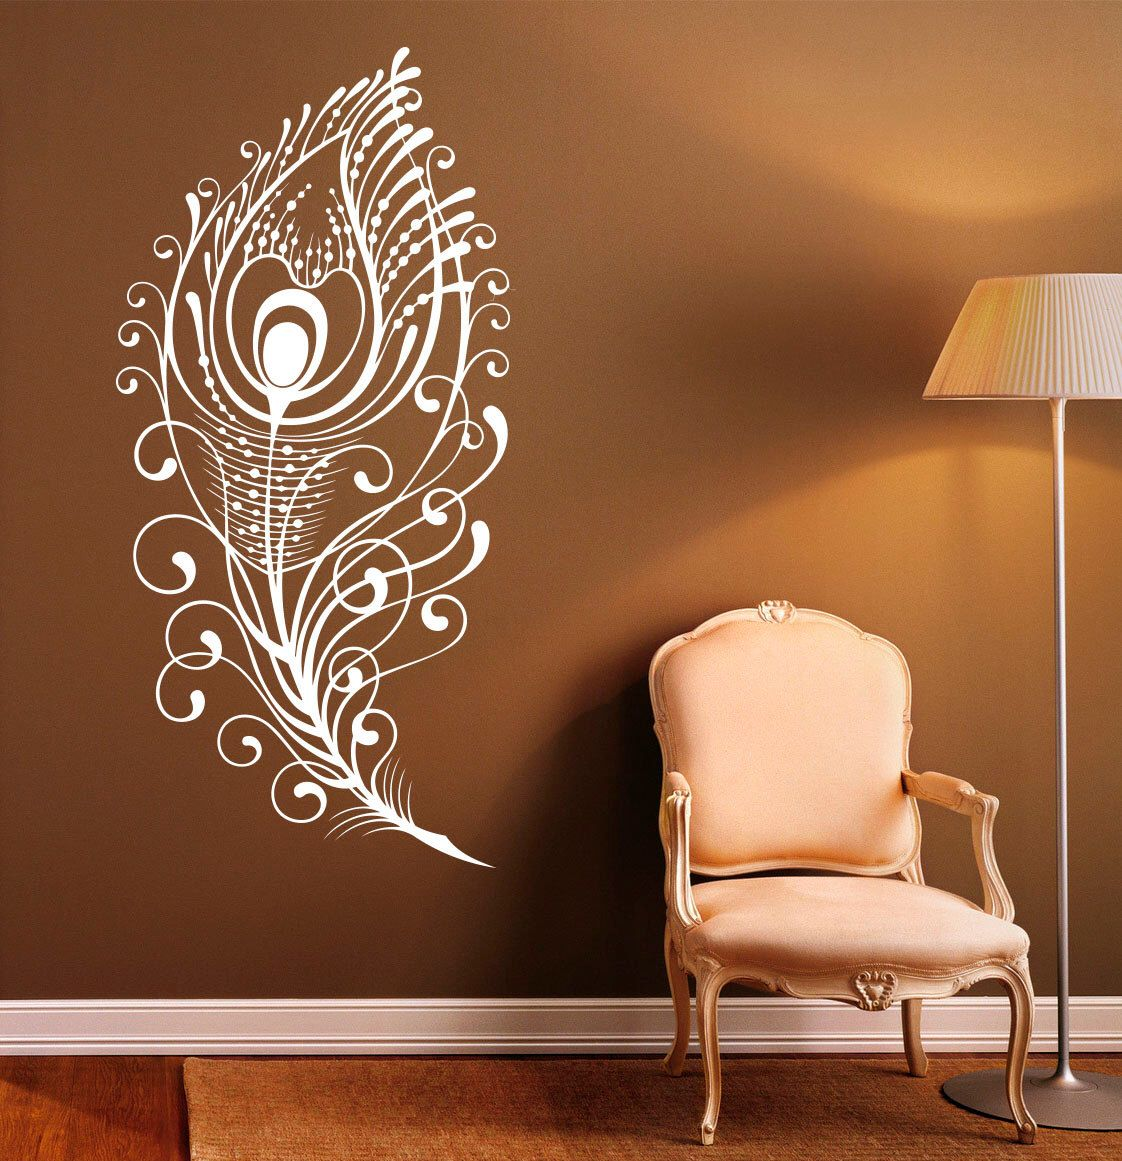 Bedroom Wall Sticker Designs Pleasing Peacock Feather Wall Decal Vinyl Stickers Bird Plumage Patterns Design Decoration